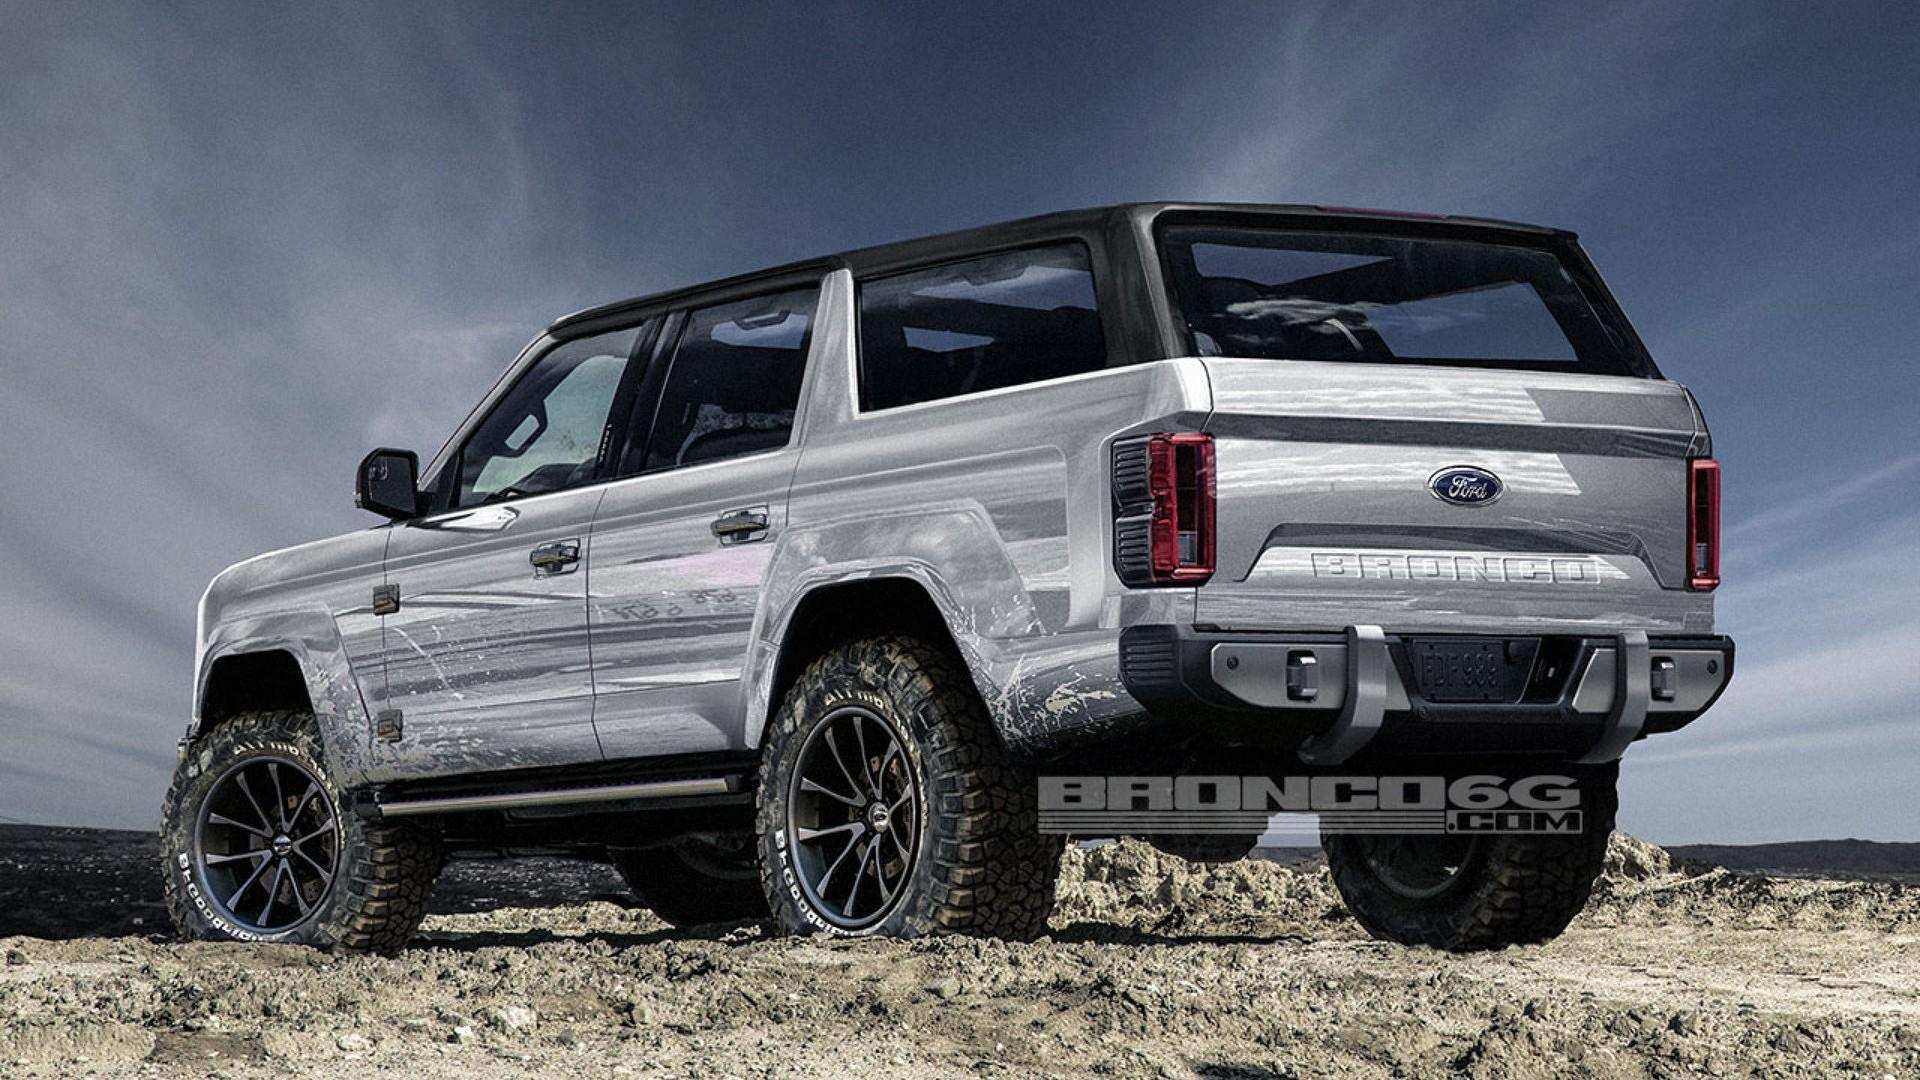 90 All New When Will The 2020 Ford Bronco Be Released Research New